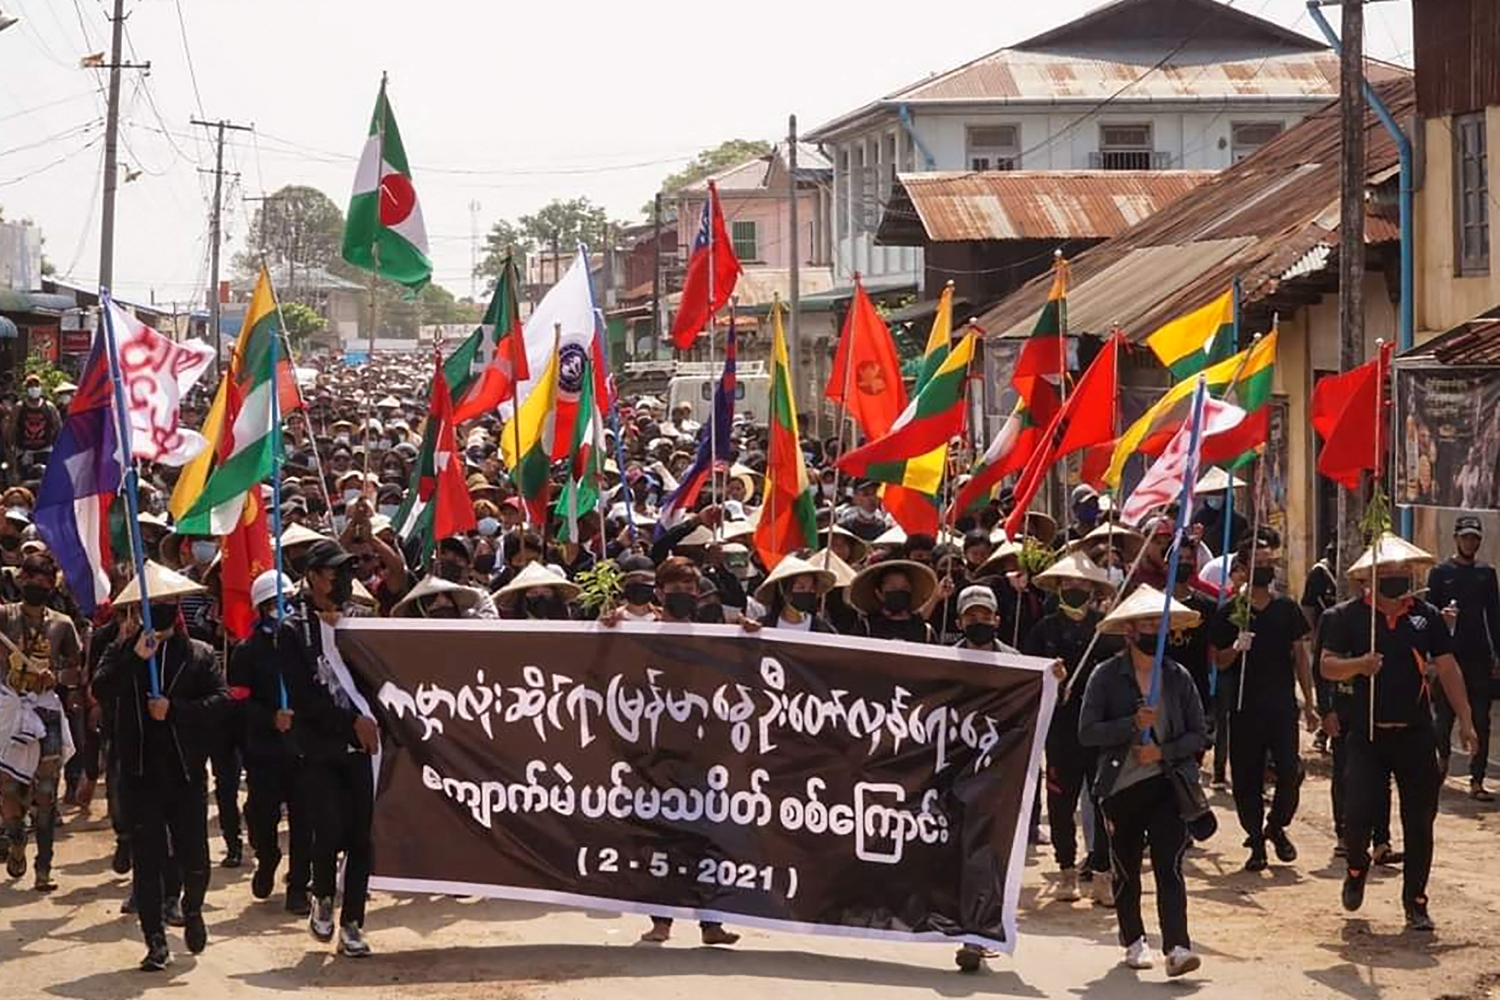 Protesters in Kyaukme, northern Shan State march for